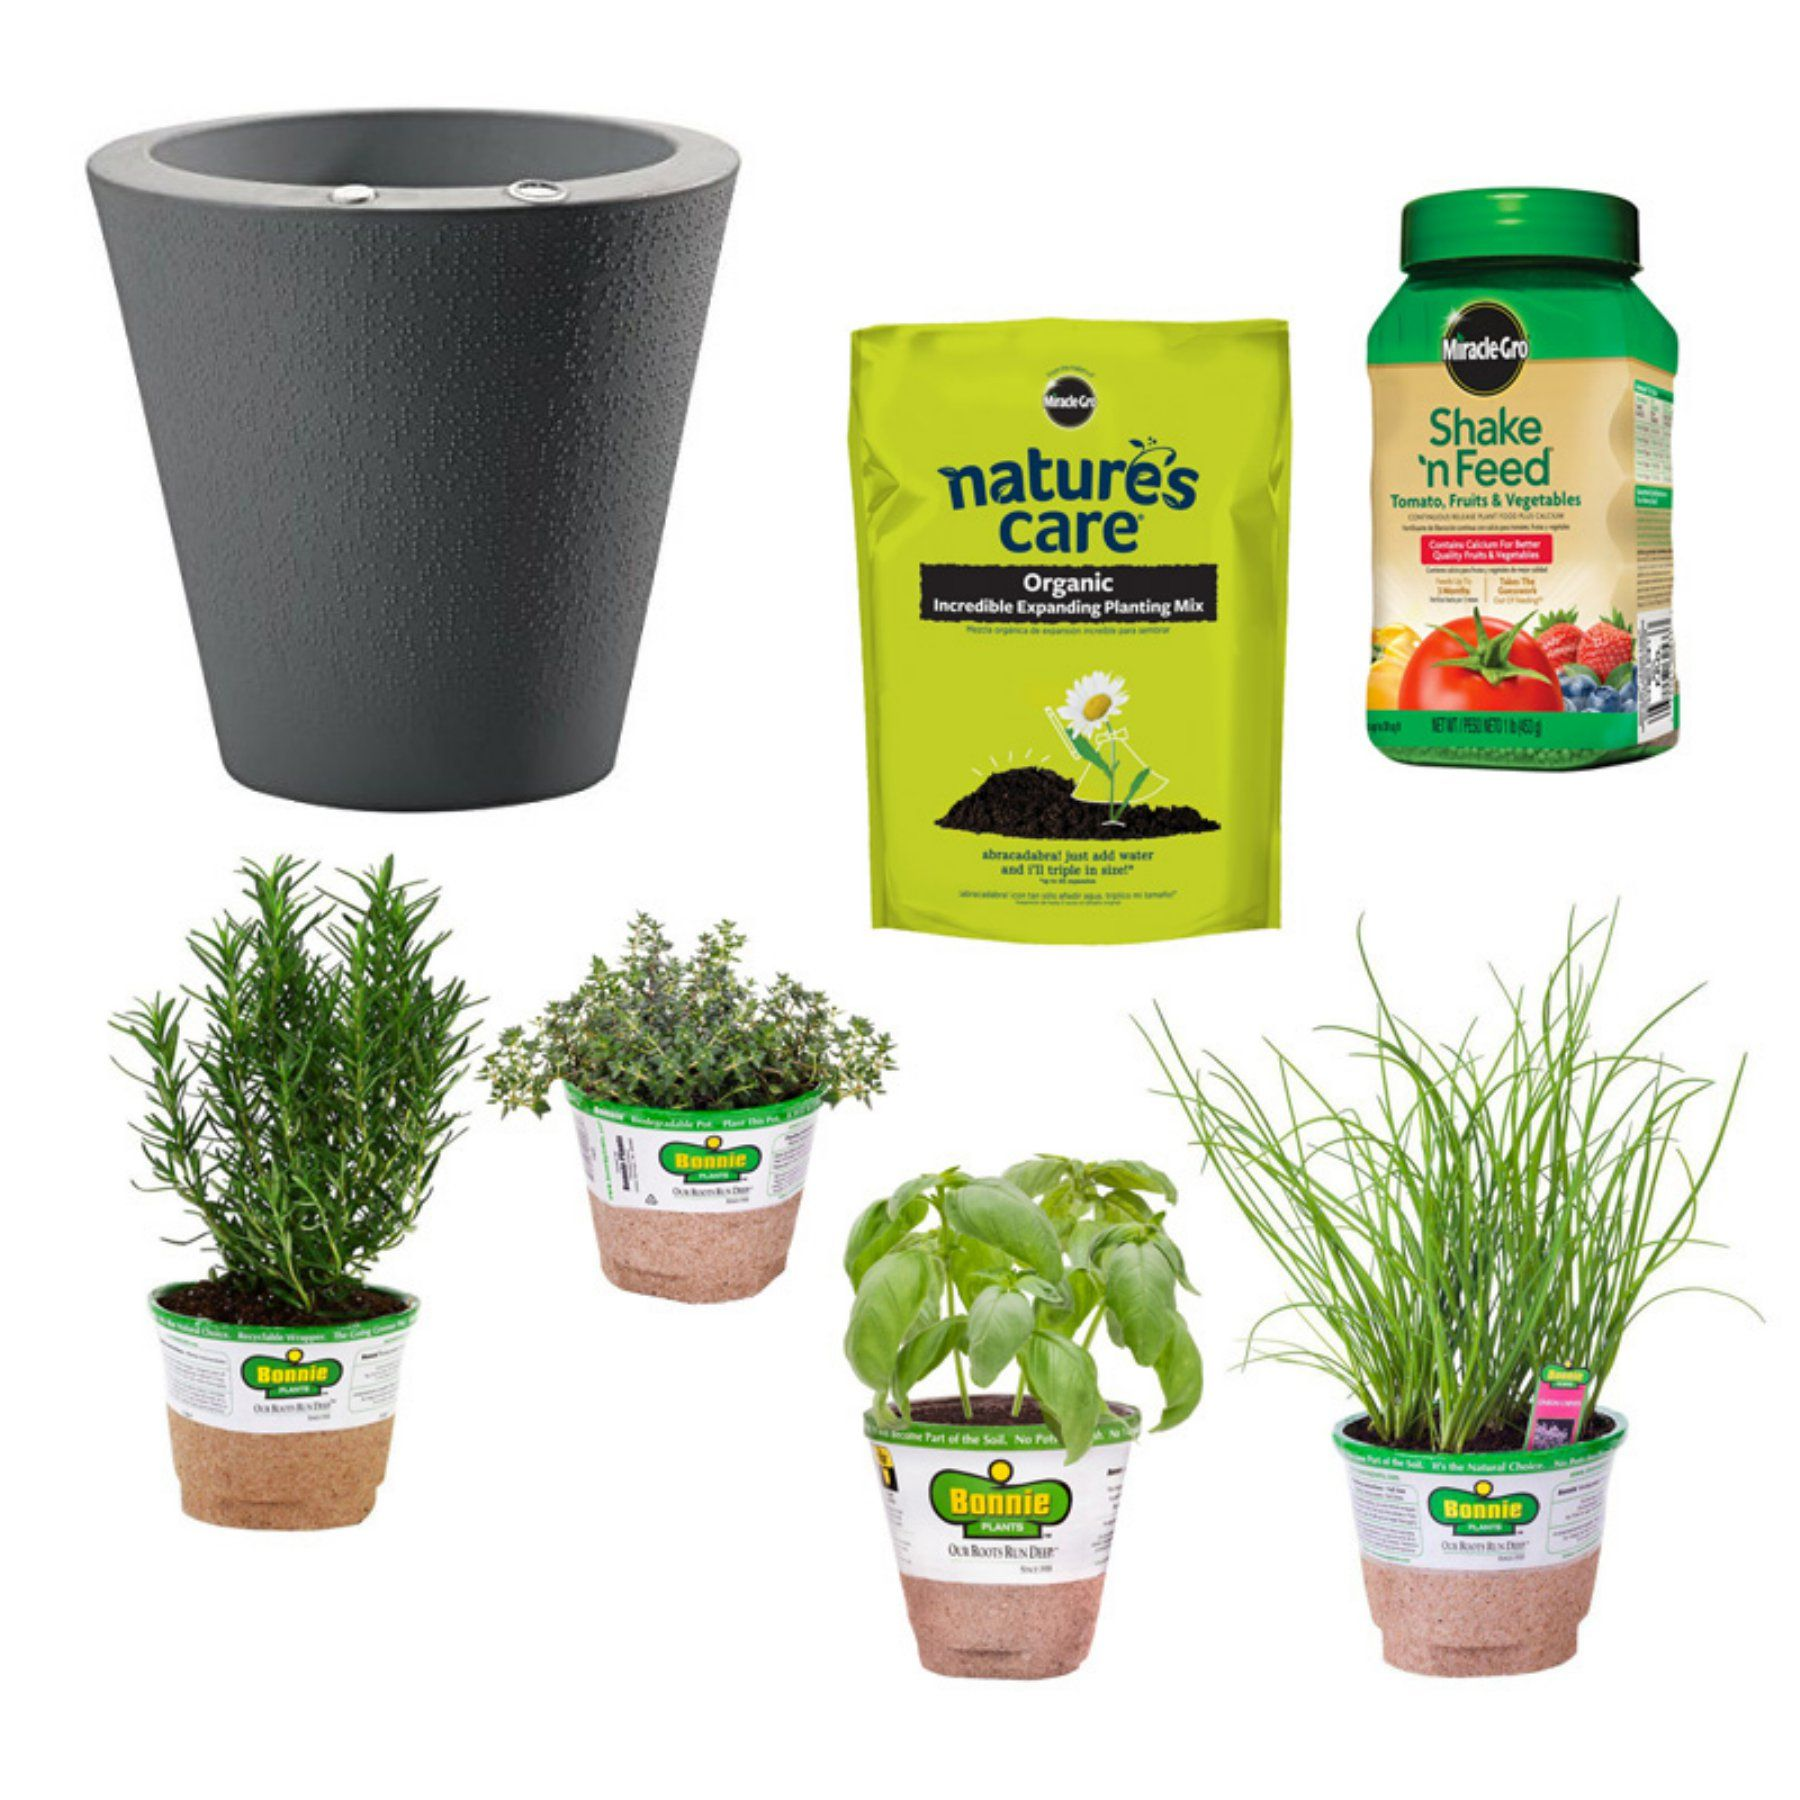 Bonnie Plants Outdoor Self Watering Beginner Herb Garden Set